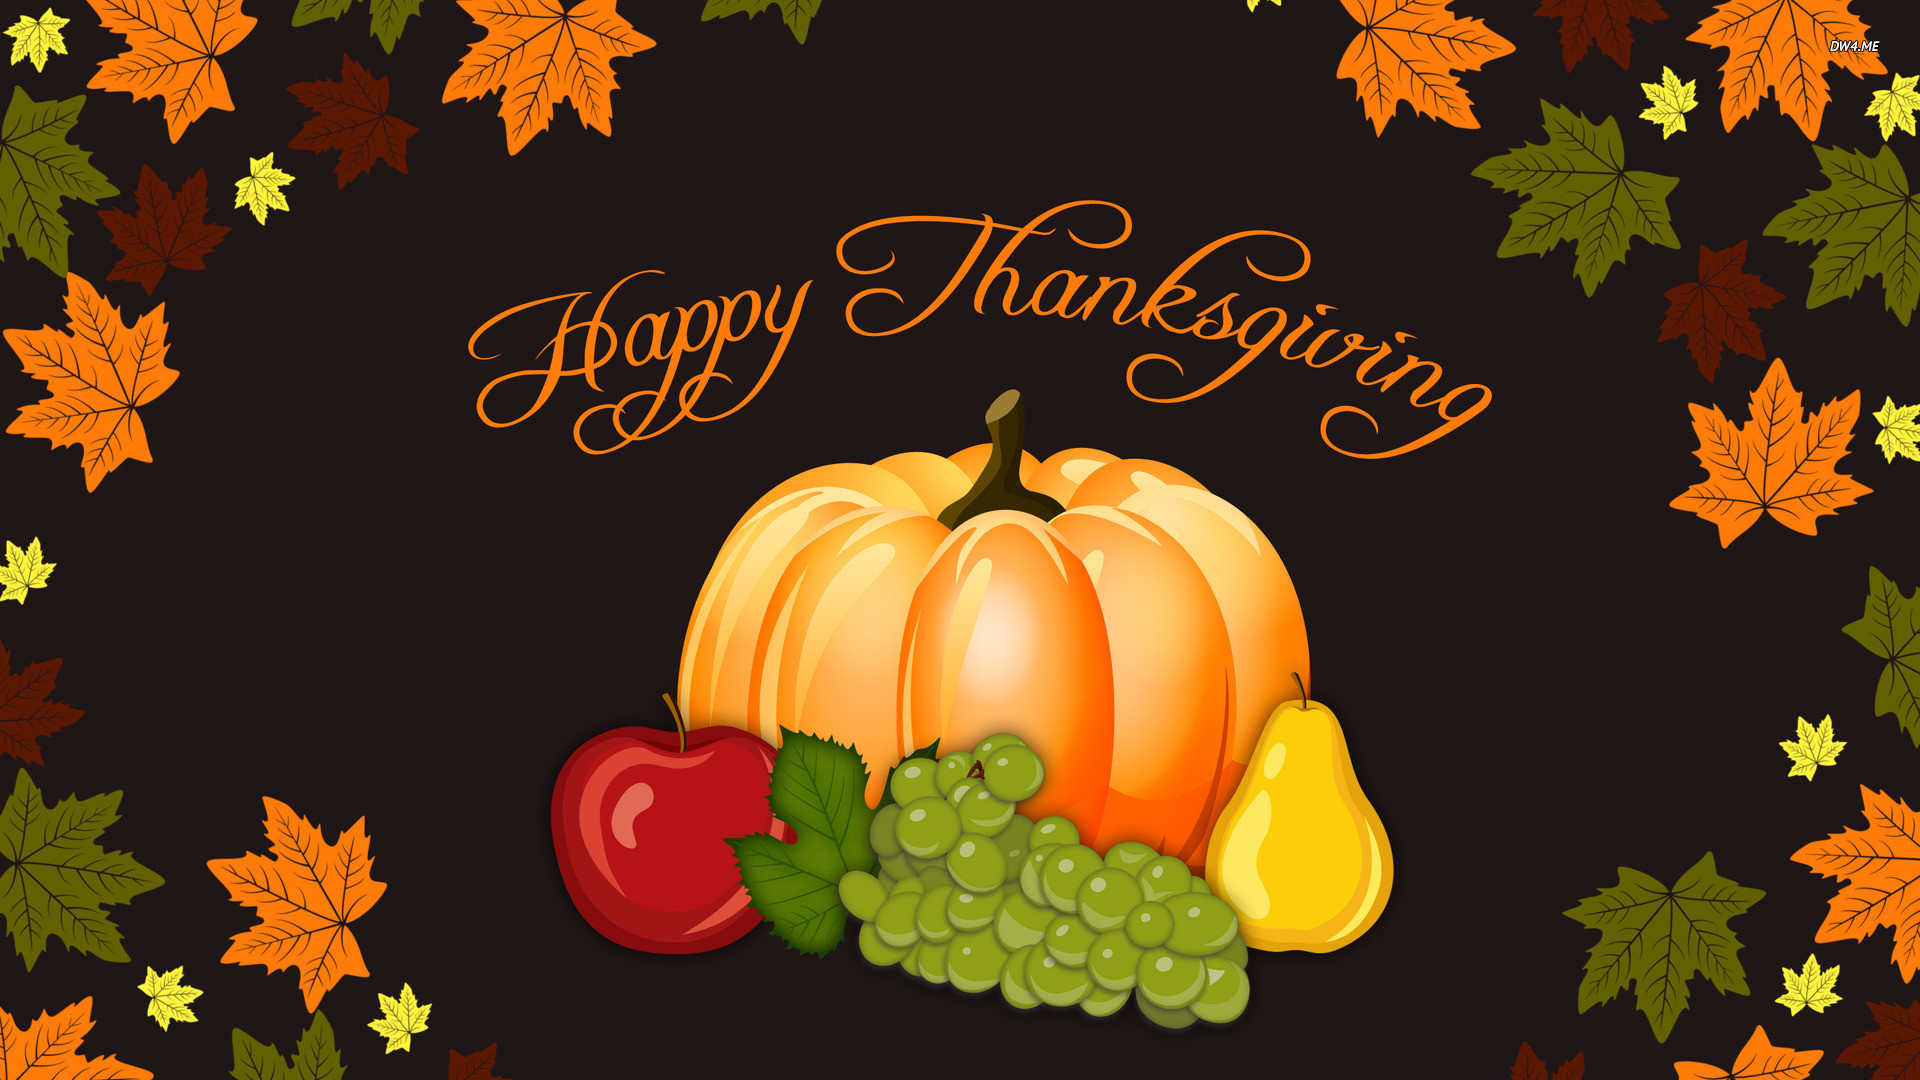 Happy Thanksgiving! wallpaper – Holiday wallpapers – #1877